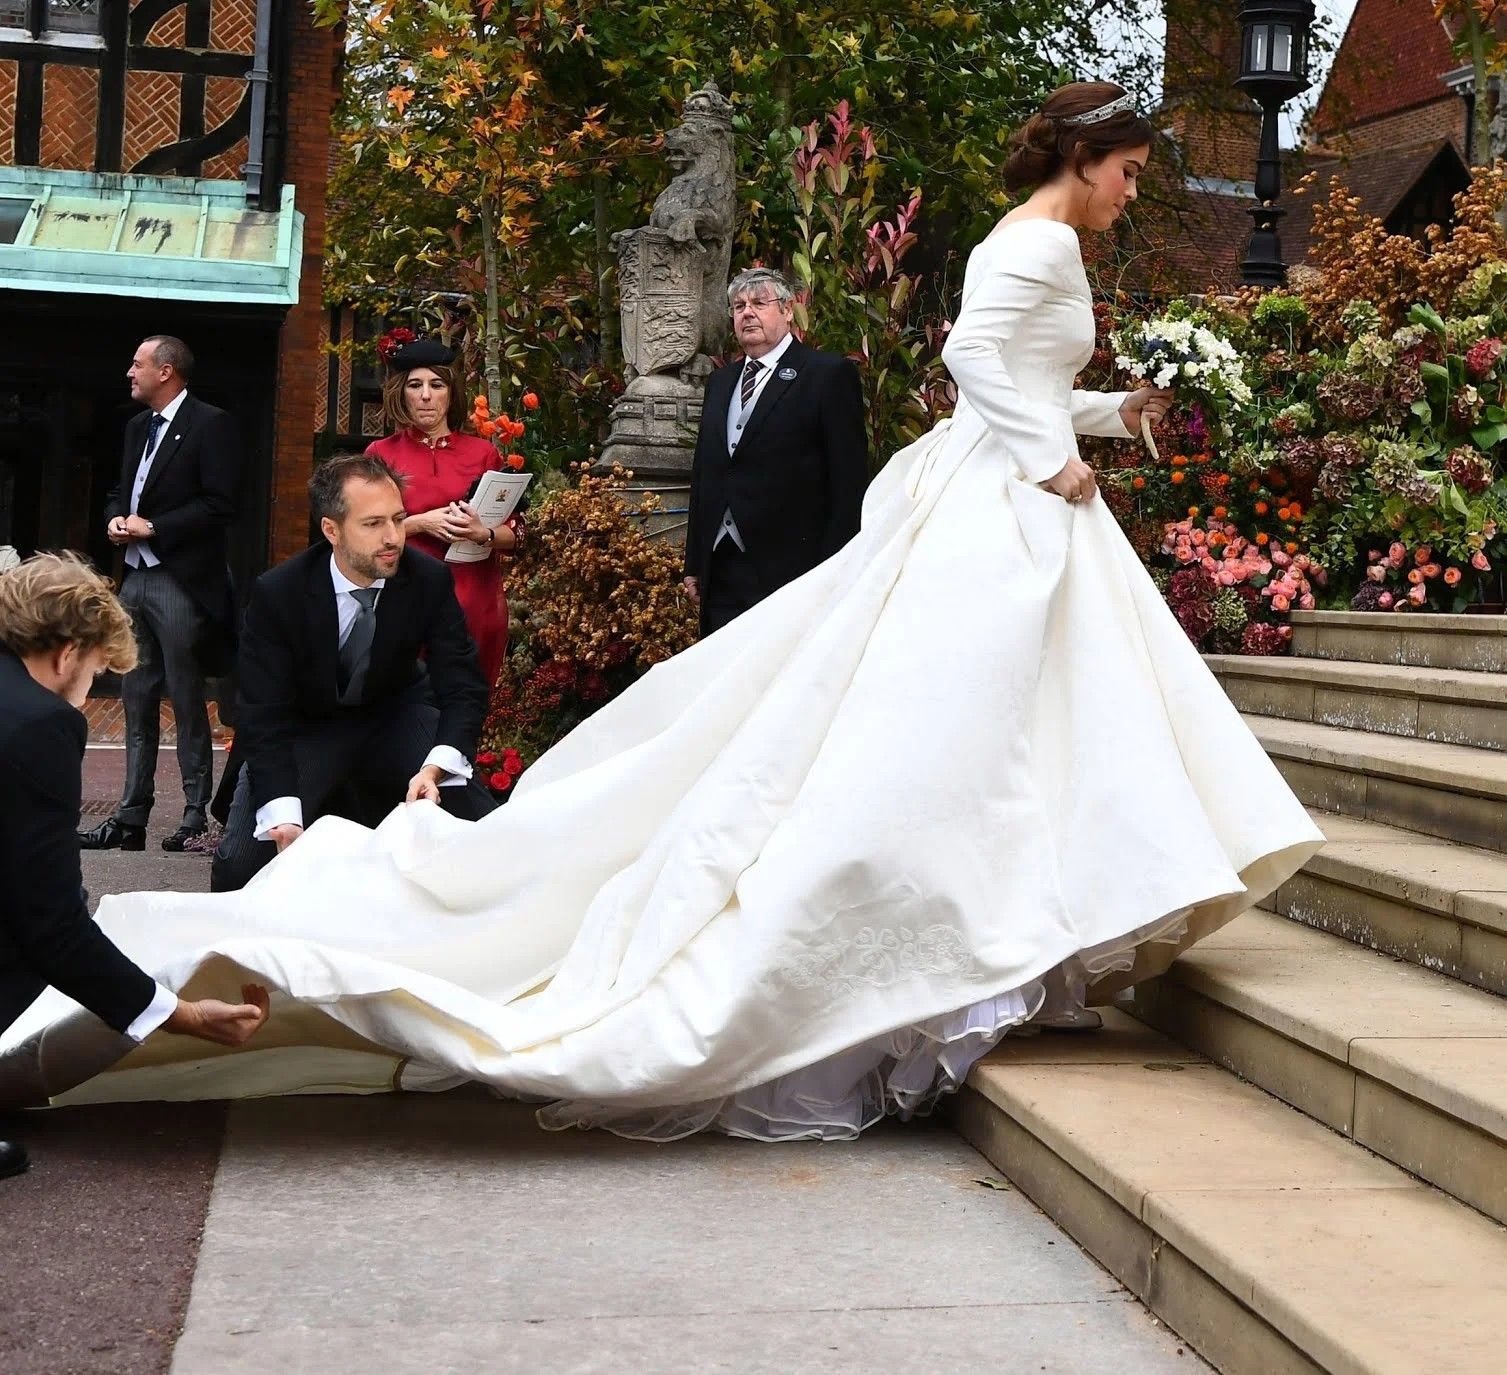 Pin By Charissa Bahre On Be Unique In Your Wedding Dress And Much More Collect All My Pins That You Want Princess Beatrice Wedding Royal Wedding Dress Eugenie Wedding [ jpg ]